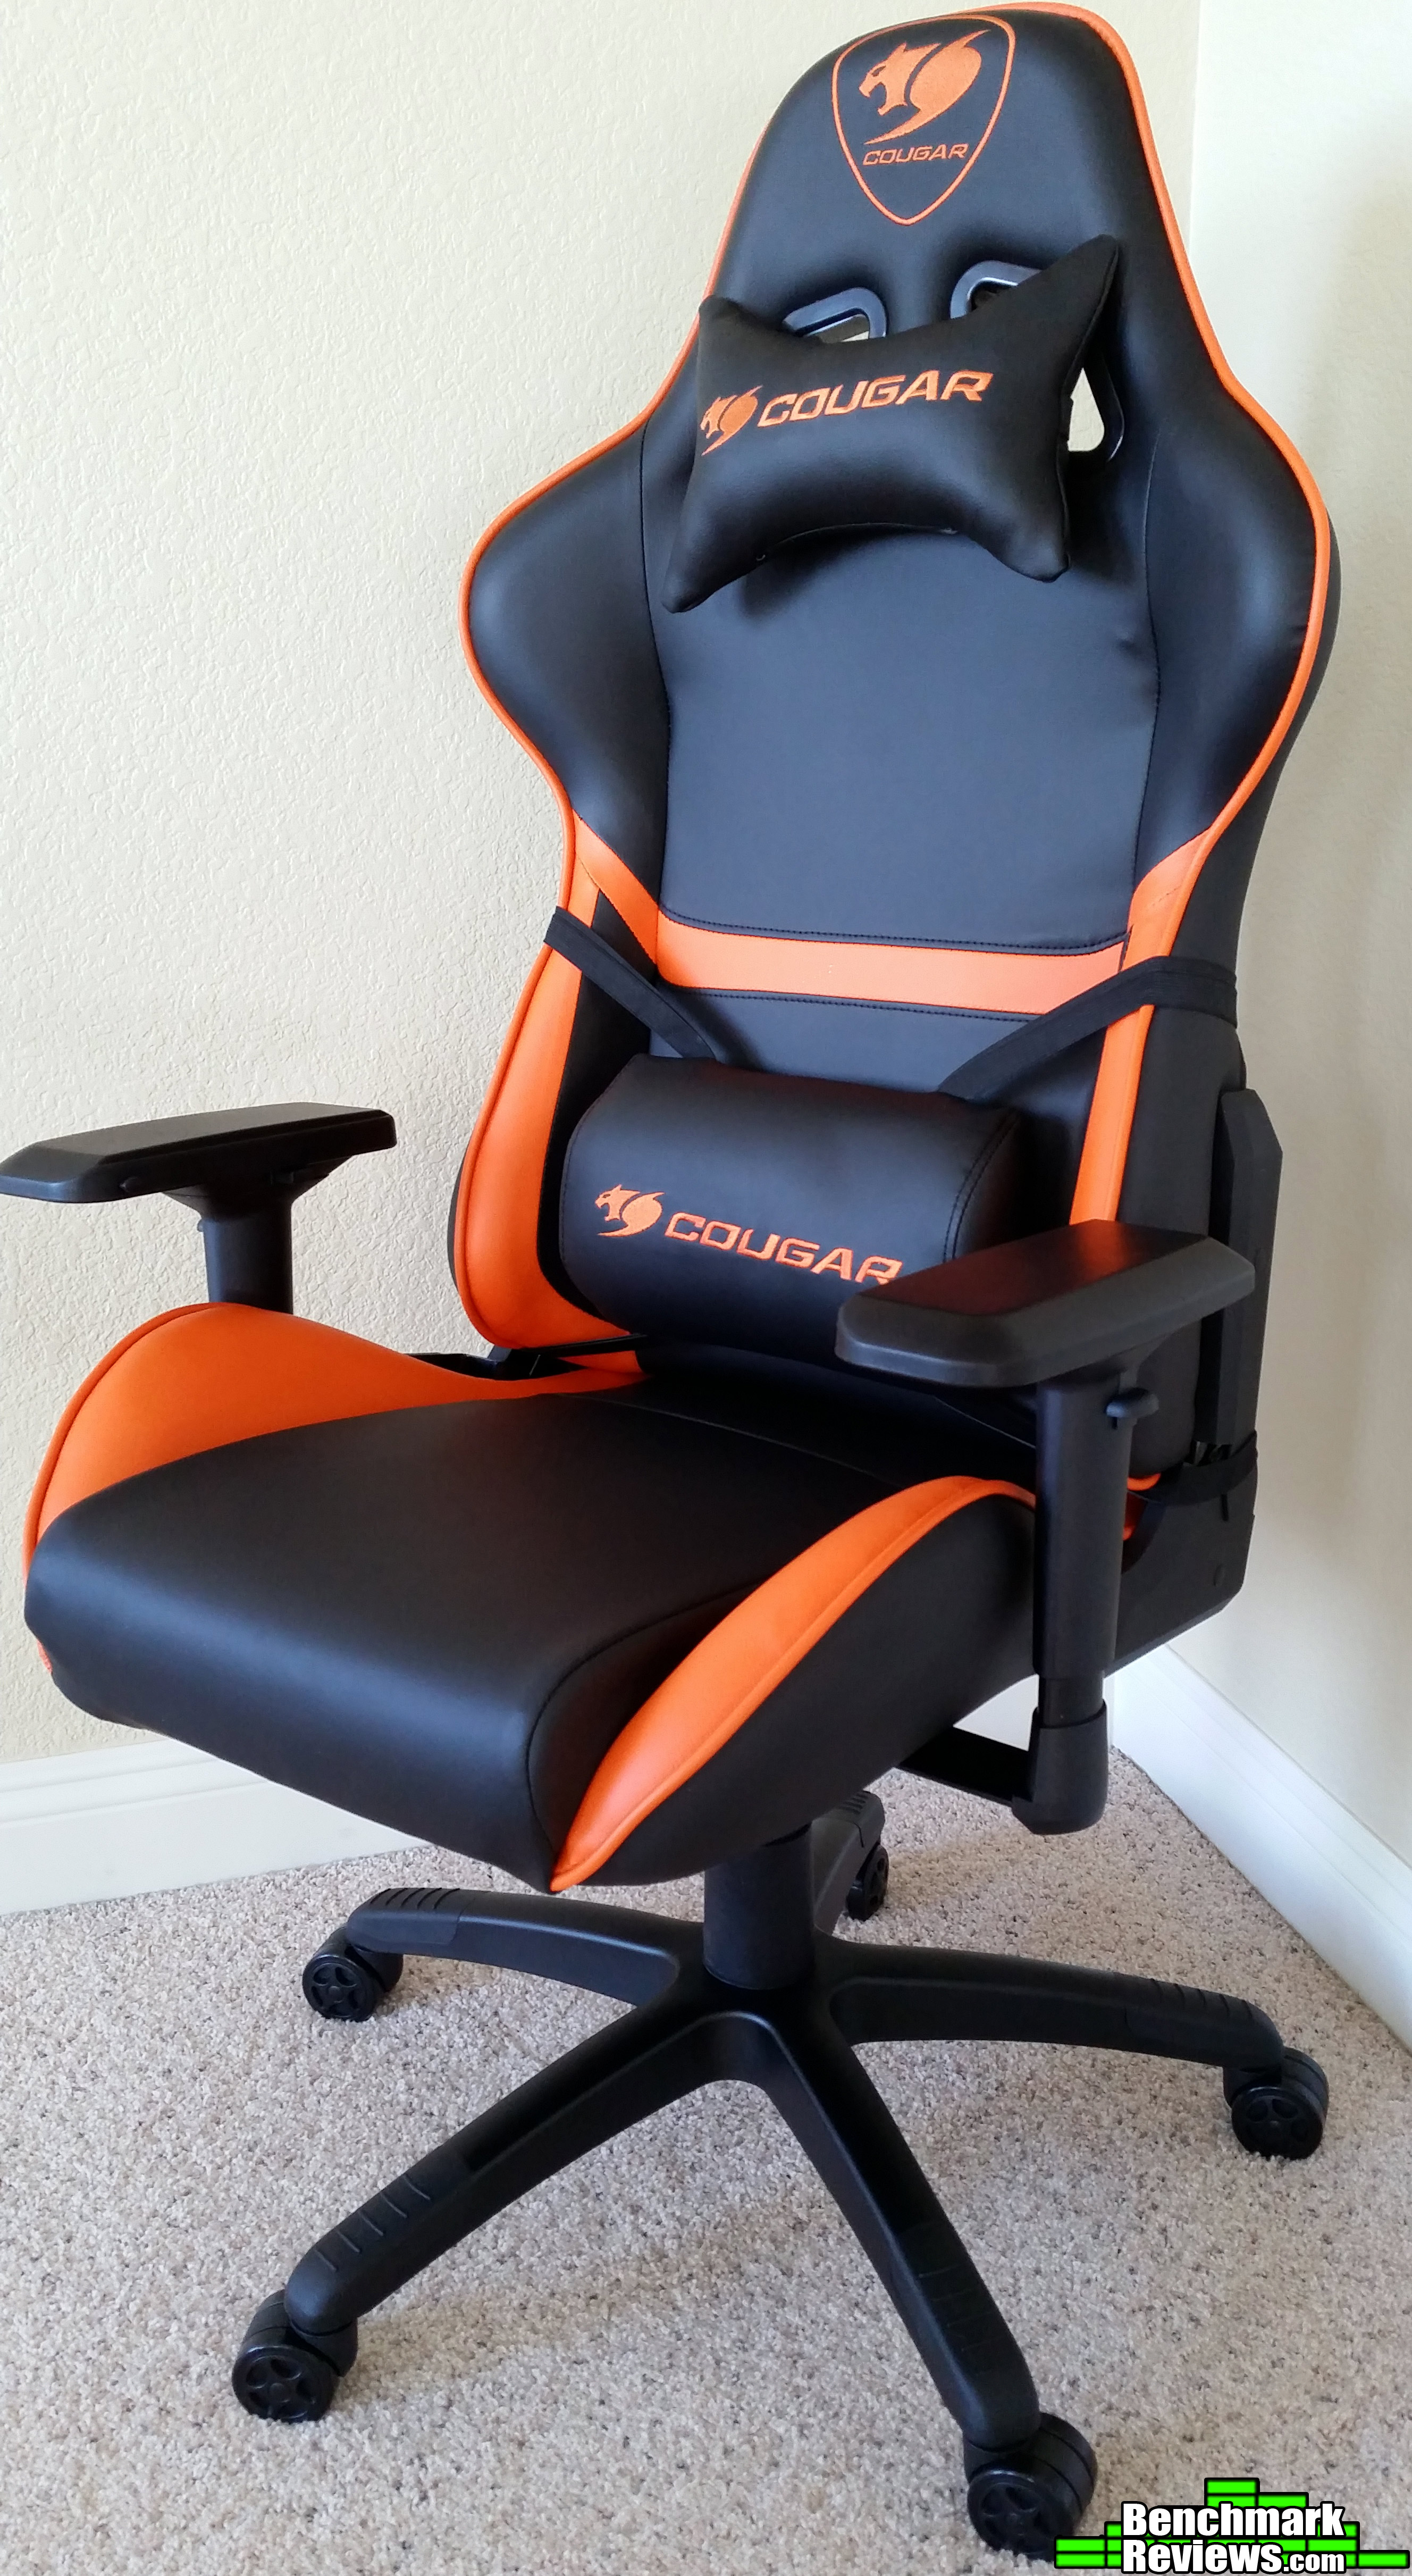 Pleasing Cougar Armor Gaming Chair Review By Olin Coles Andrewgaddart Wooden Chair Designs For Living Room Andrewgaddartcom